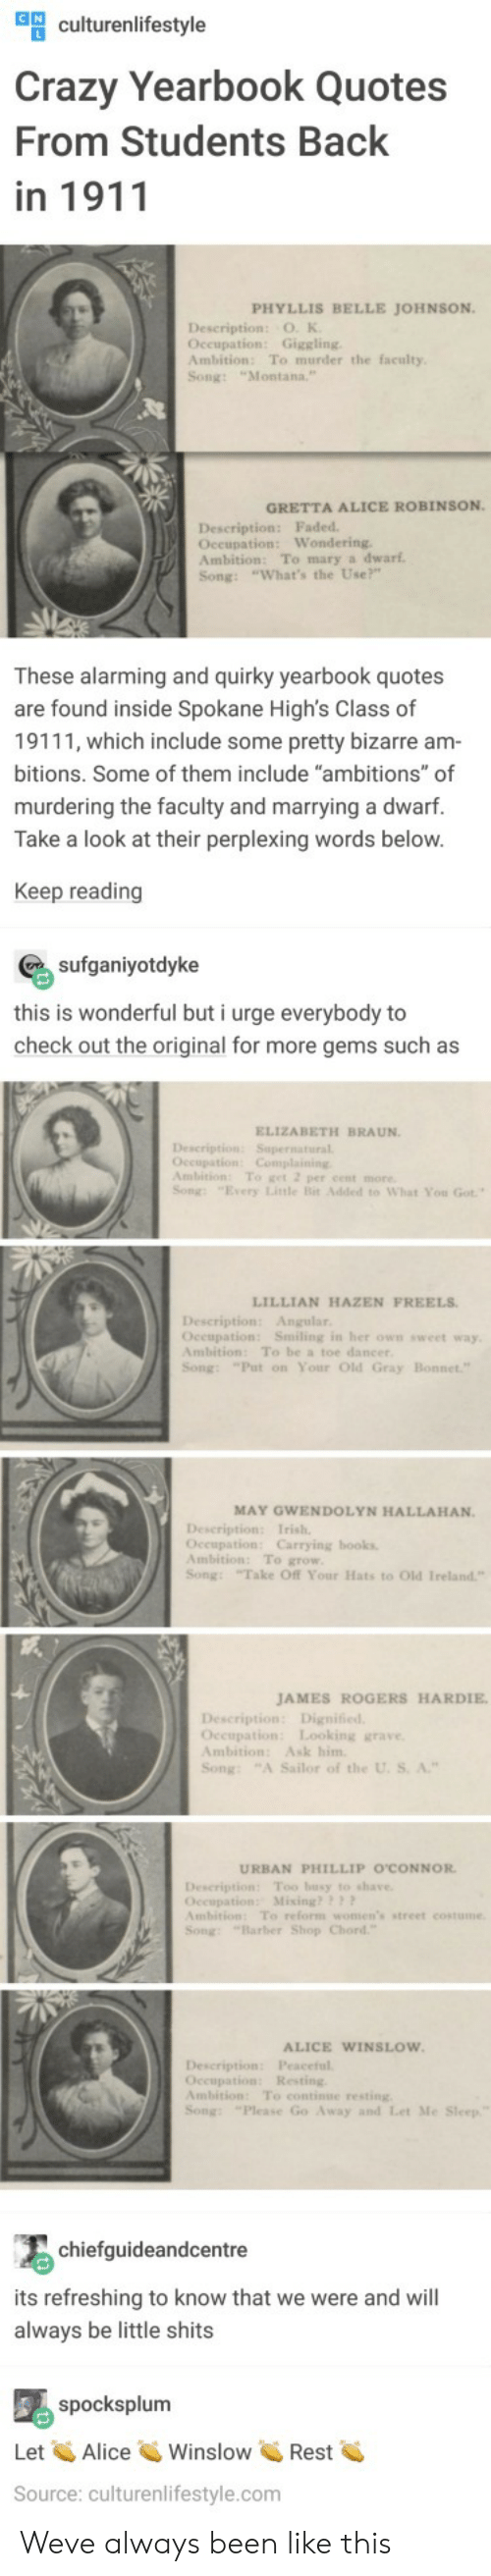 """Barber, Books, and Crazy: ulturenlifestyle  Crazy Yearbook Quotes  From Students Back  in 1911  PHYLLIS BELLE JOHNSON  Description: O. K  Occupation: Giggling  Ambition: To murder the faculty  Song: """"Montana.  GRETTA ALICE ROBINSON  Description: Faded  Oceupation: Wondering  Ambition: To mary a dwarf  Song: """"What's the Use?""""  These alarming and quirky yearbook quotes  are found inside Spokane High's Class of  19111, which include some pretty bizarre am  bitions. Some of them include """"ambitions"""" of  murdering the faculty and marrying a dwarf.  Take a look at their perplexing words below  Keep reading  sufganiyotdyke  this is wonderful but i urge everybody to  check out the original for more gems such as  ELIZABETH BRAUN  Description: Supernatural  Ambition: To get 2 per cent more  Song: """"Every Litle Bit Added to What You Got  LILLIAN HAZEN FREELS  Description: Angular  Oceupation: Smiling in her own sweet way  Ambition: To be a toe dancer  Song: """"Put on Your Old Gray  MAY GWENDOLYN HALLAHAN.  Occupation: Carrying books  Ambition: To grow  Song: Take Off Your Hats to Old Ireland""""  JAMES ROGERS HARDIE  Occupation: Looking grave  Ambition: Ask him  Song: """"A Sailor of the U. S. A.""""  URBAN PHILLIP O'CONNOR  Description Too busy to shave  Occupation: Mixing??  mbition: To reform women's street costume  Song: """"Barber Shop Chord  ALICE WINSLOW  Description: Peaceful  Occupation: Resting  Ambition: To continue resting  Song: """"Please Go Away and Let Me  chiefguideandcentre  its refreshing to know that we were and will  always be little shits  spocksplum  Let AliceWinslowRest  Source: culturenlifestyle.com Weve always been like this"""